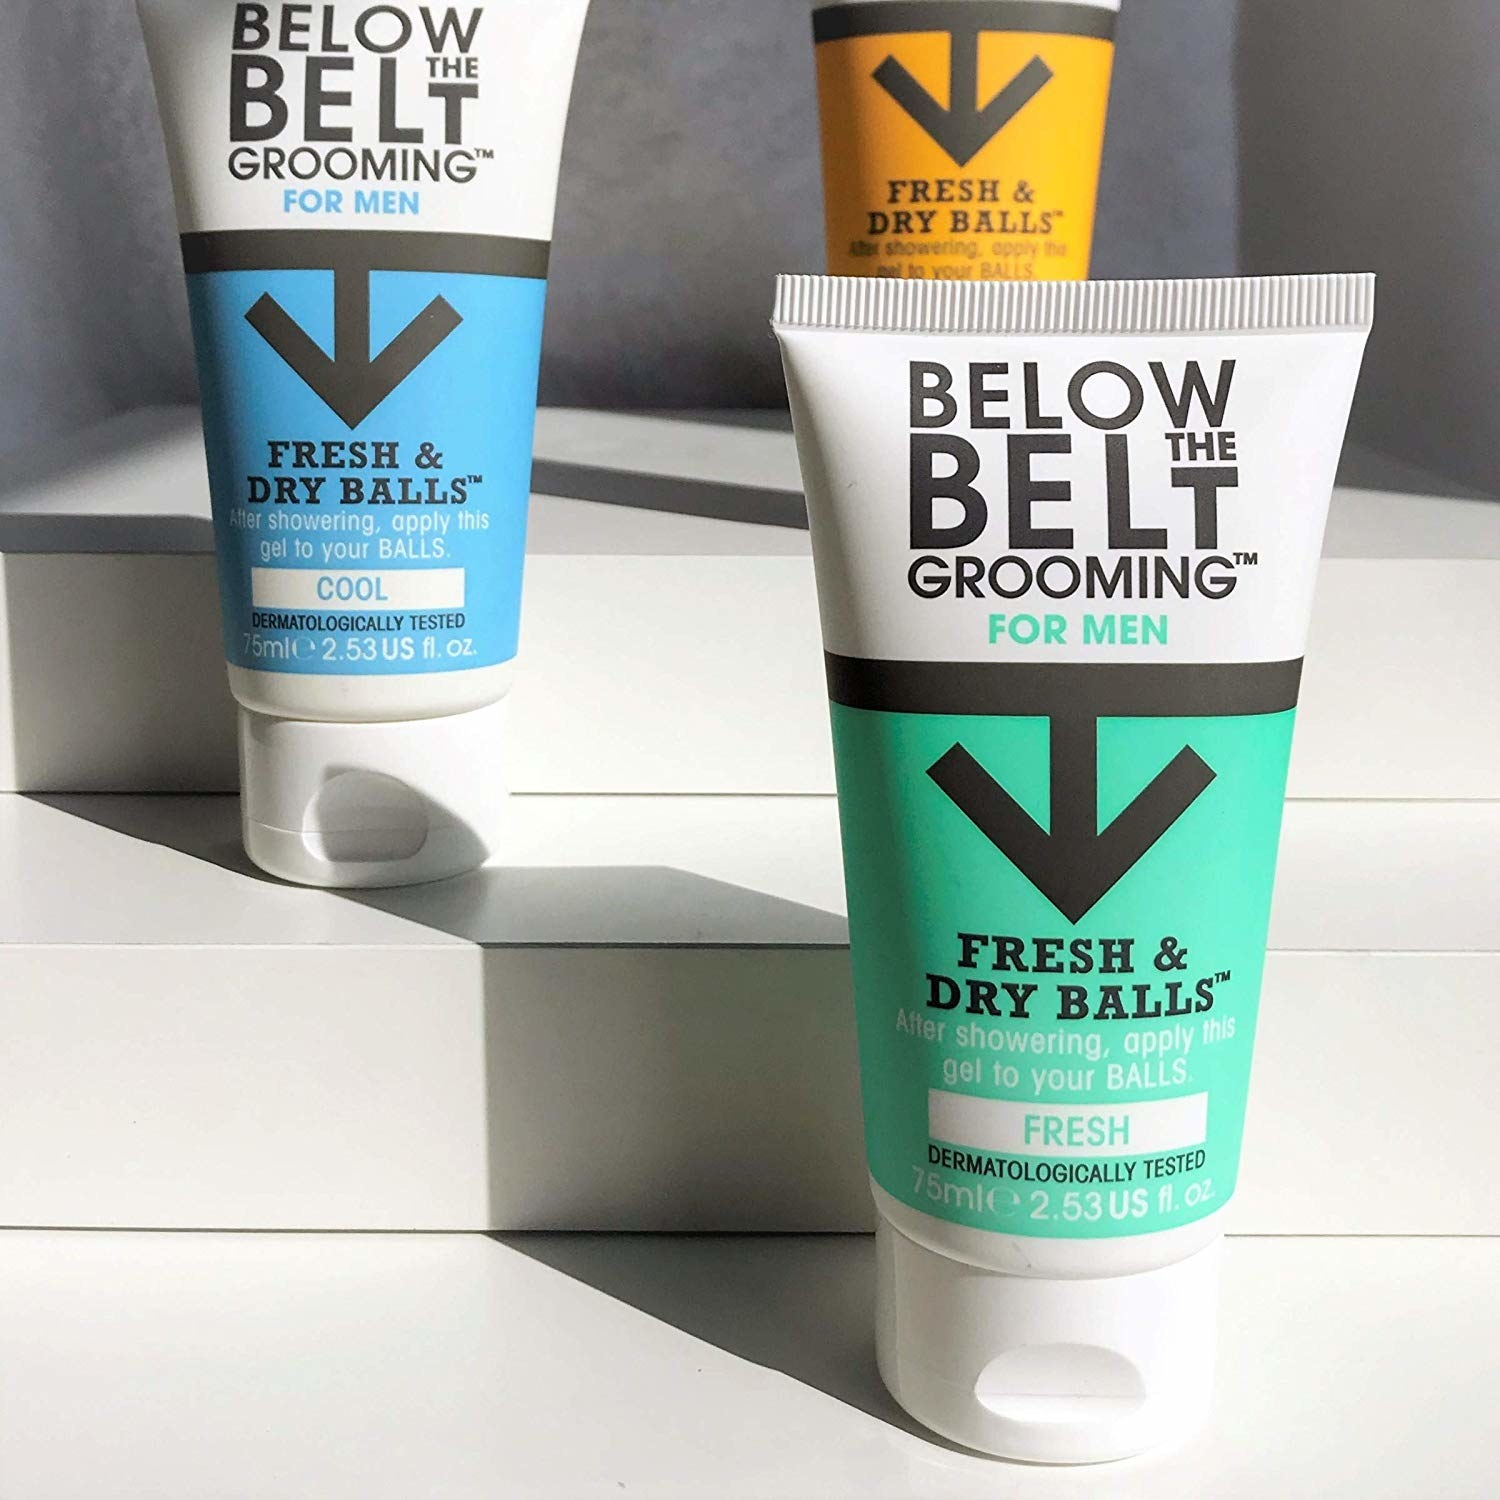 Three tubes of Below the Belt cream in various scents